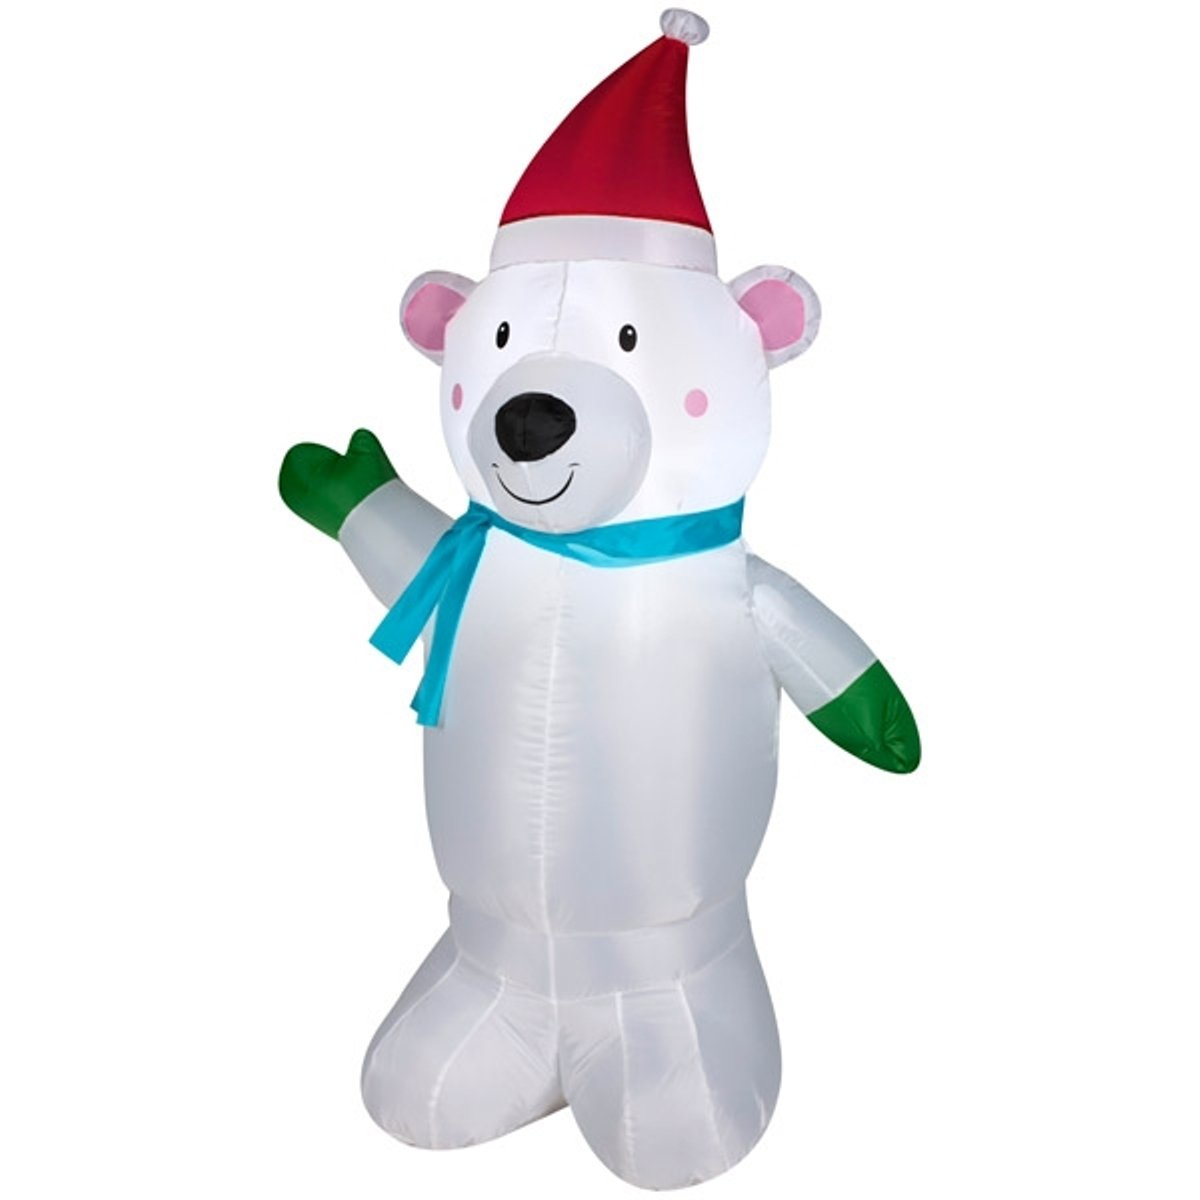 Amazon.com: Gemmy Airblown Inflatable Polar Bear Wearing Santa Hat ...